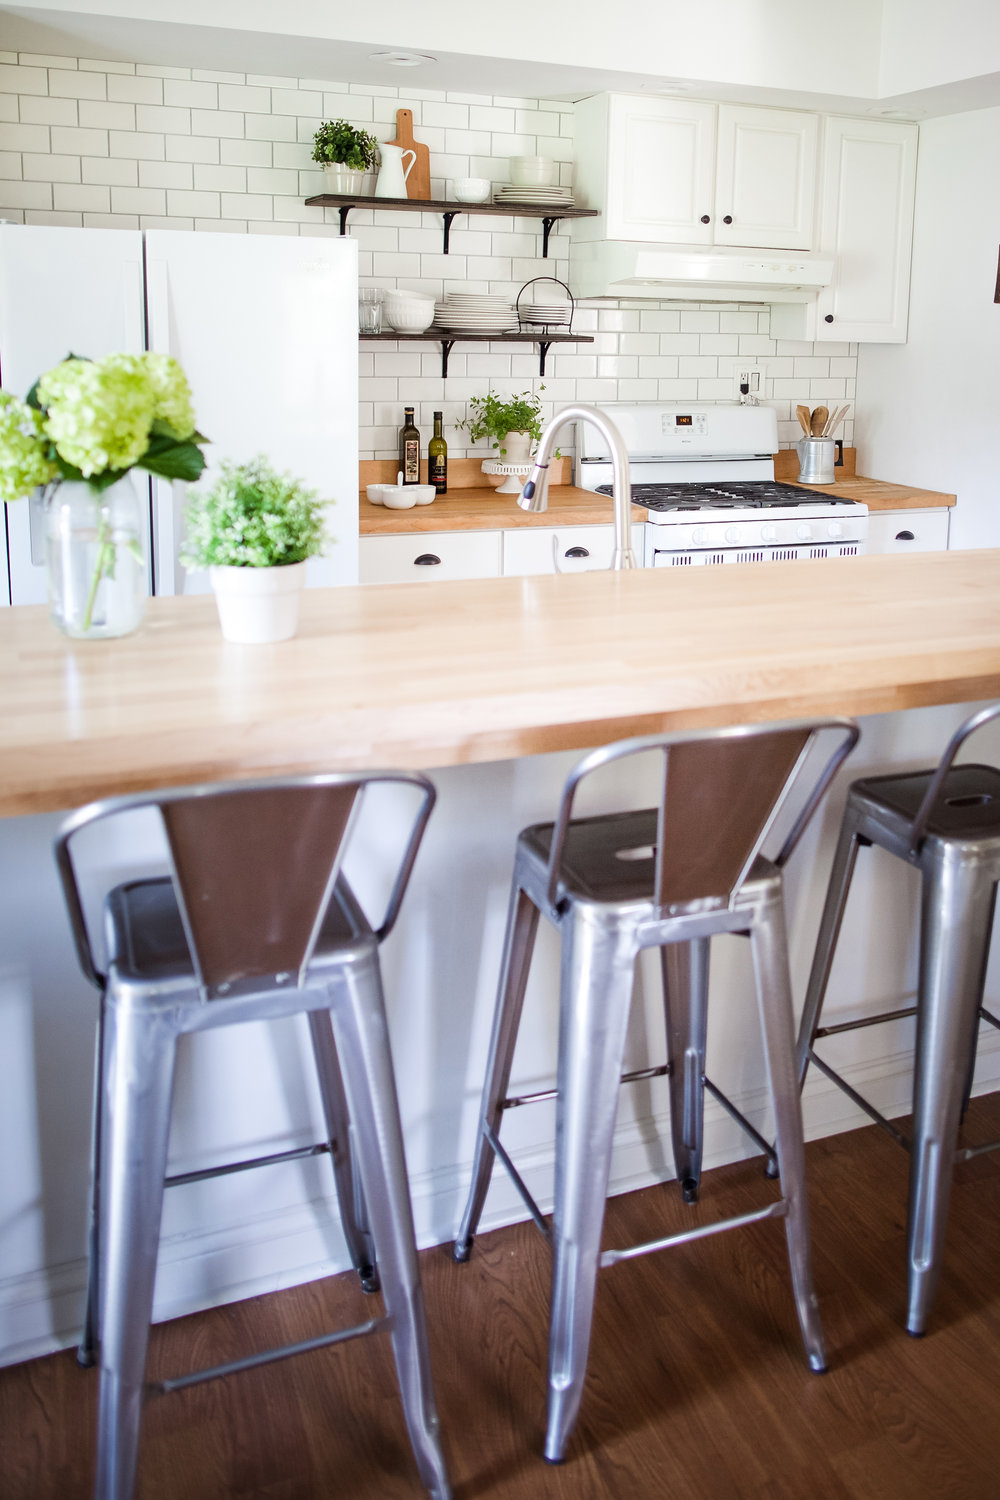 Modern Farmhouse Kitchen- Laura Design Co.